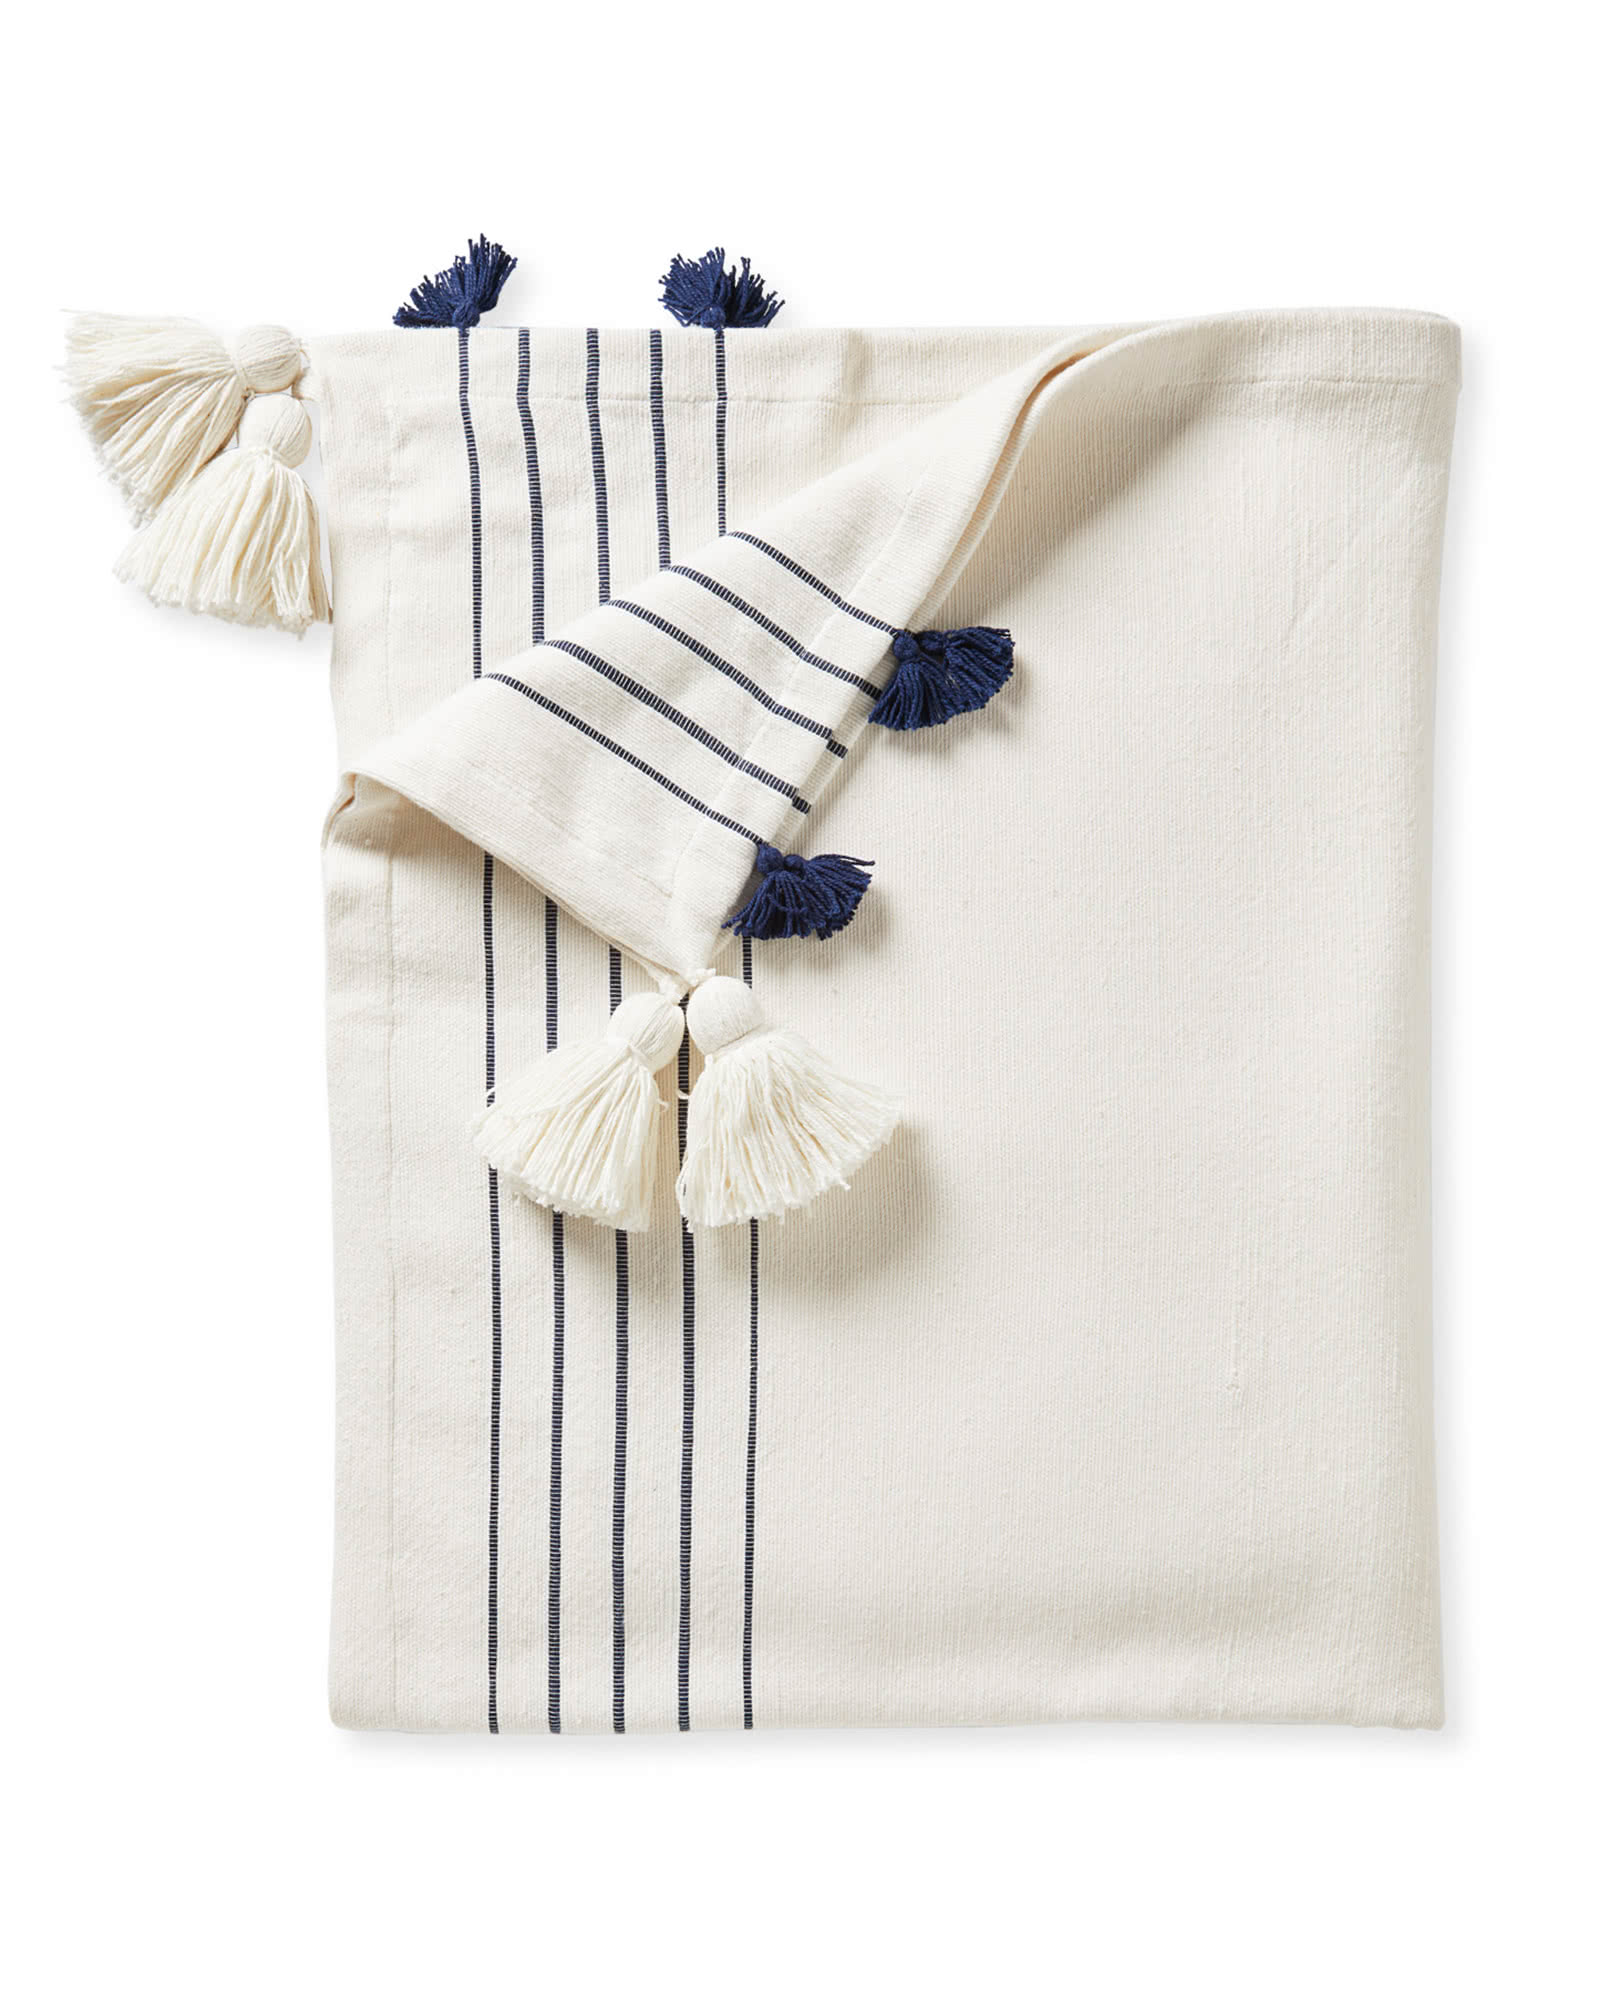 Del Mar Cotton Throw, Navy